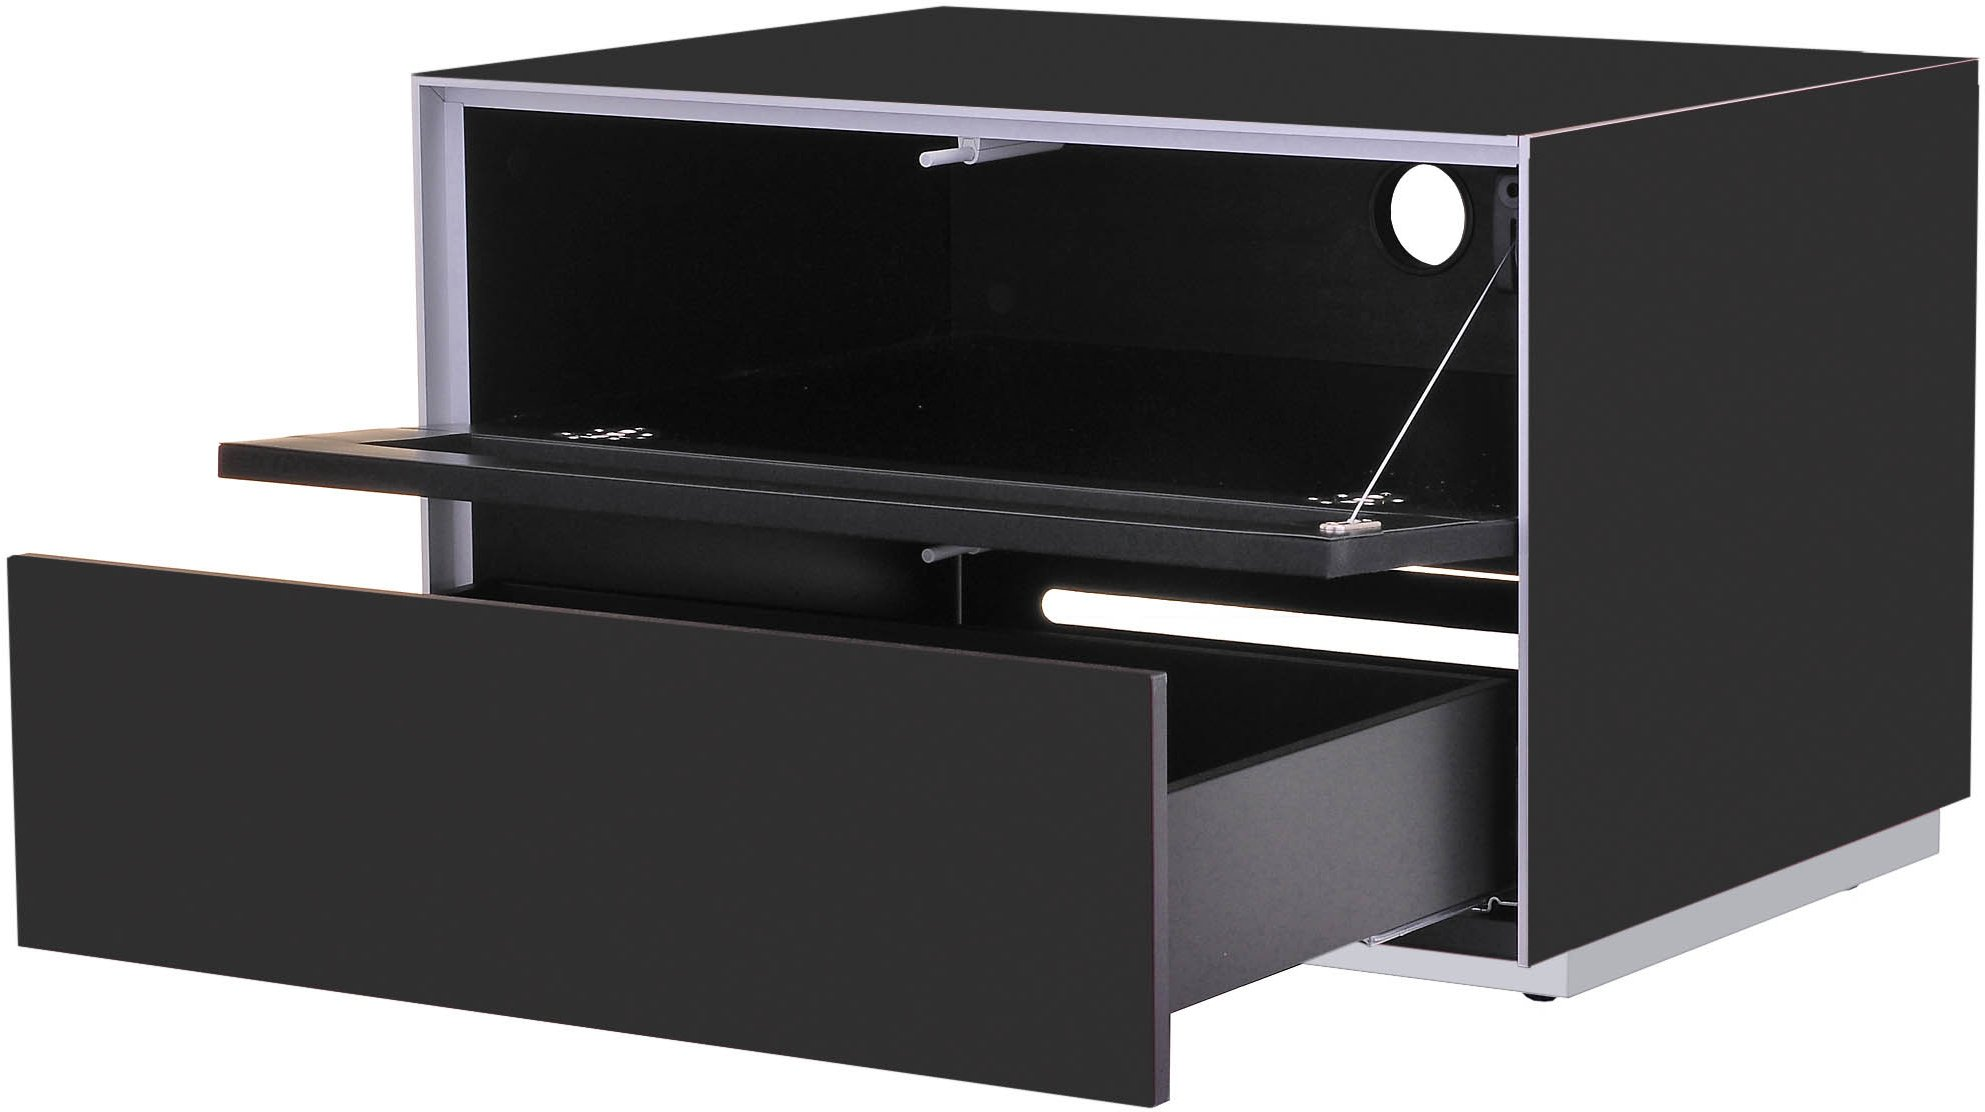 Superieur Optimum Project Iso Series Small TV Stand With Audio Fabric Shelf   Gloss  Black Alternative Image